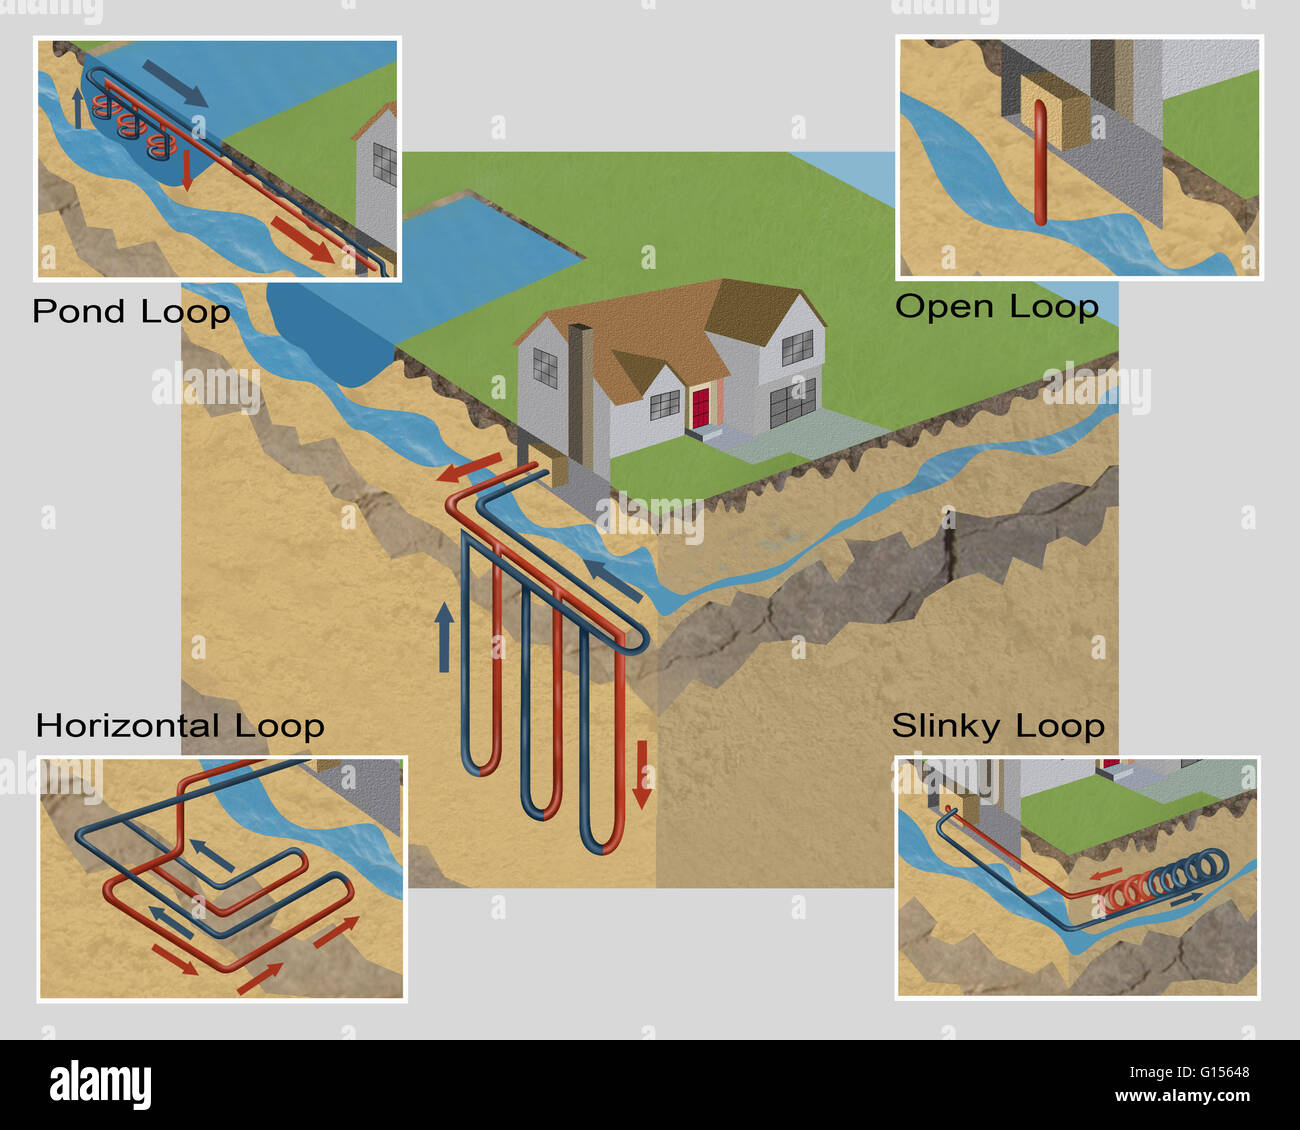 Geothermal Source Heat Pump Stock Photos Wiring Diagram An Illustration Of Vertical Loop Is A Central Heating And